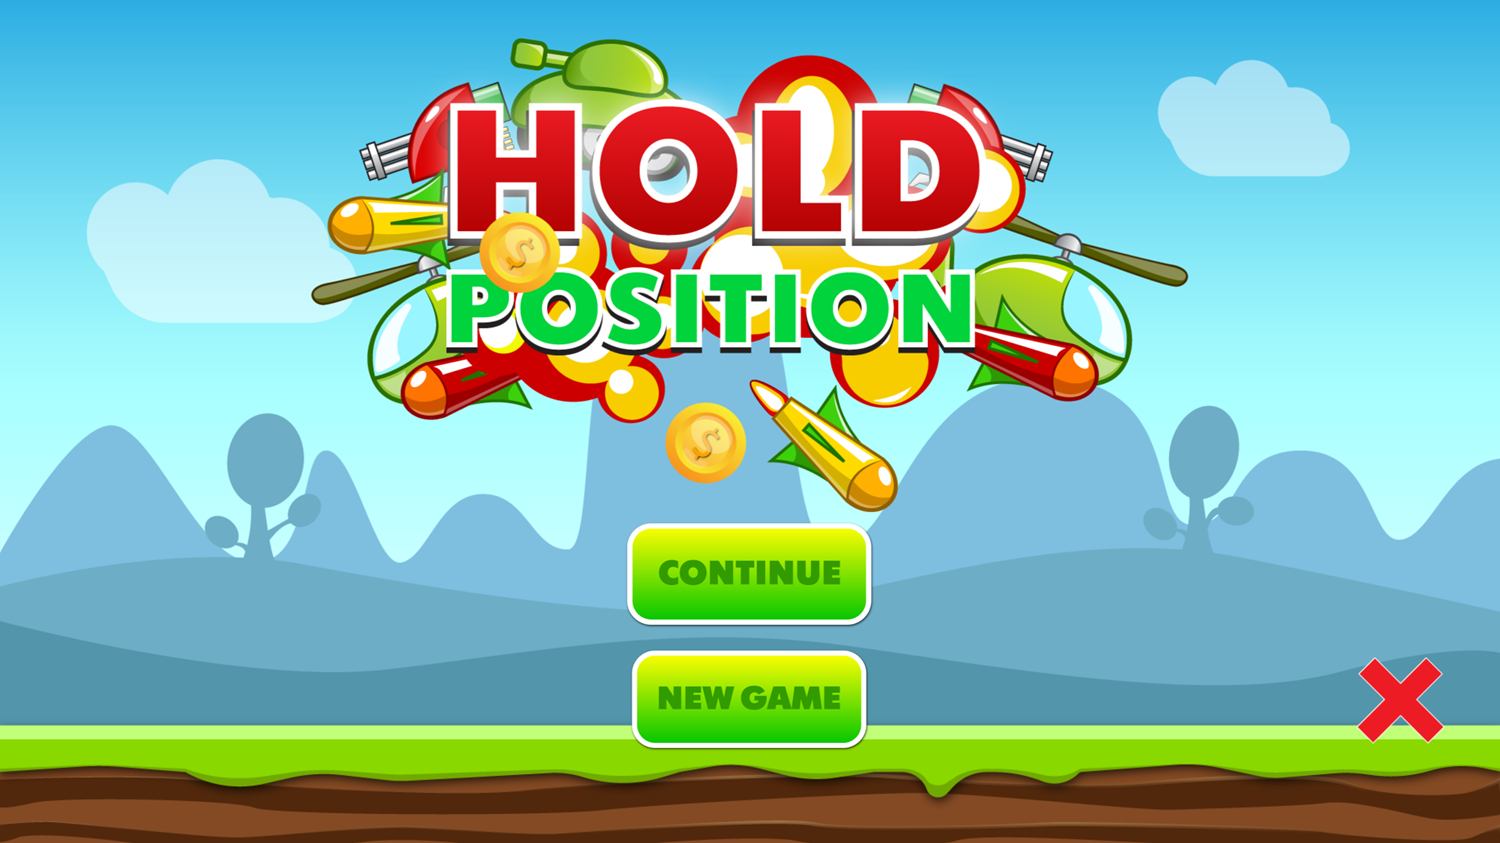 Hold Position Game Welcome Screenshot.